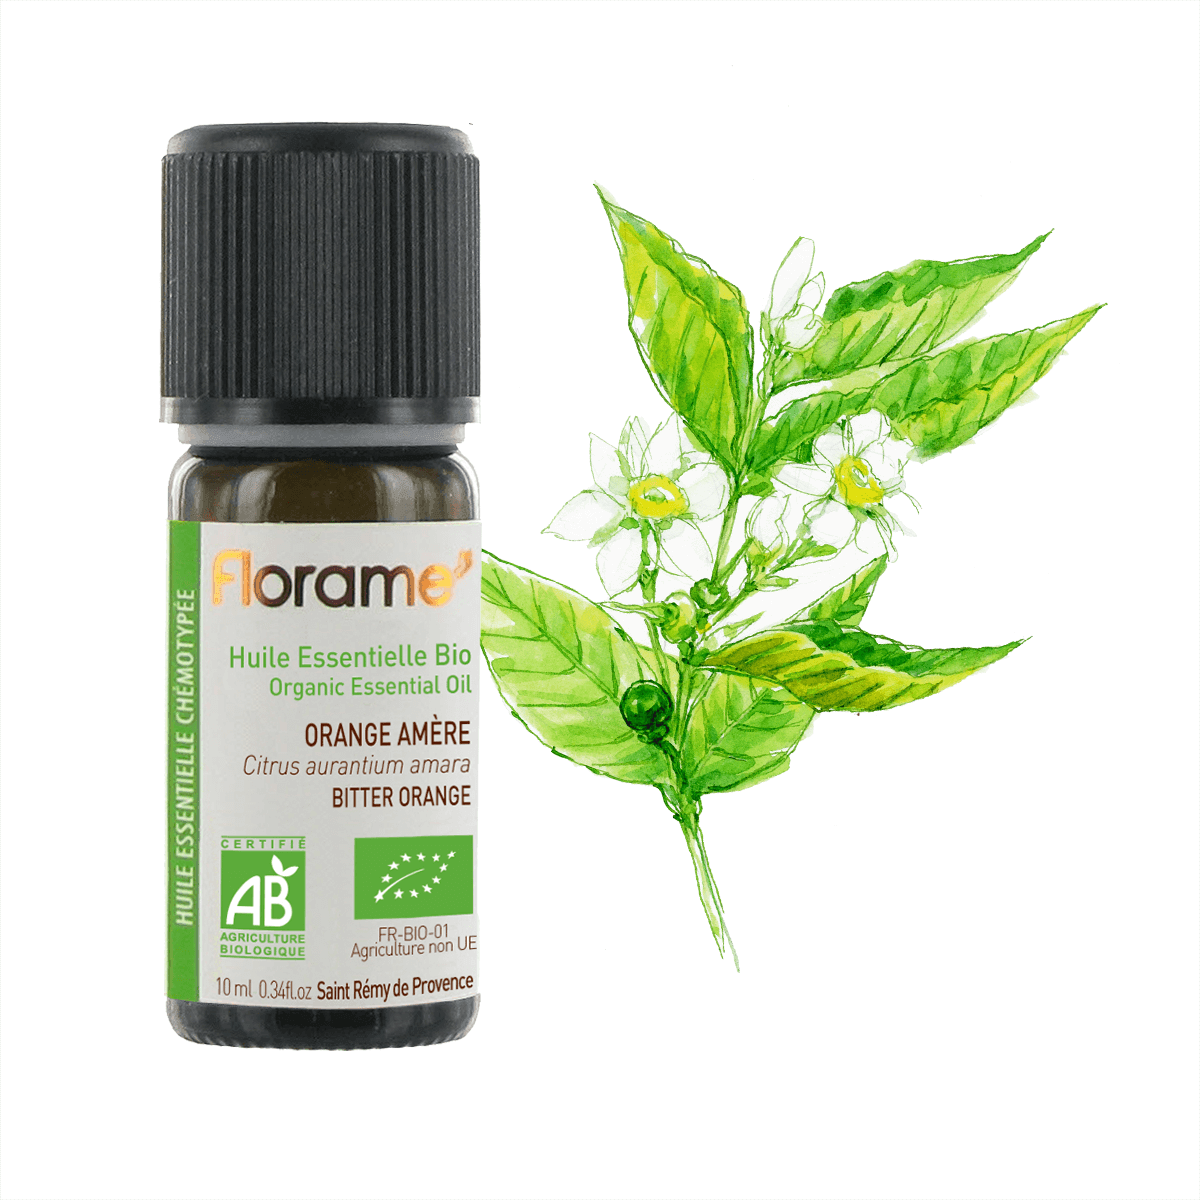 FLORAME Organic Essential Oil - Bitter Orange Blossom 有機橙花精油 [1ml] - MINT Organics